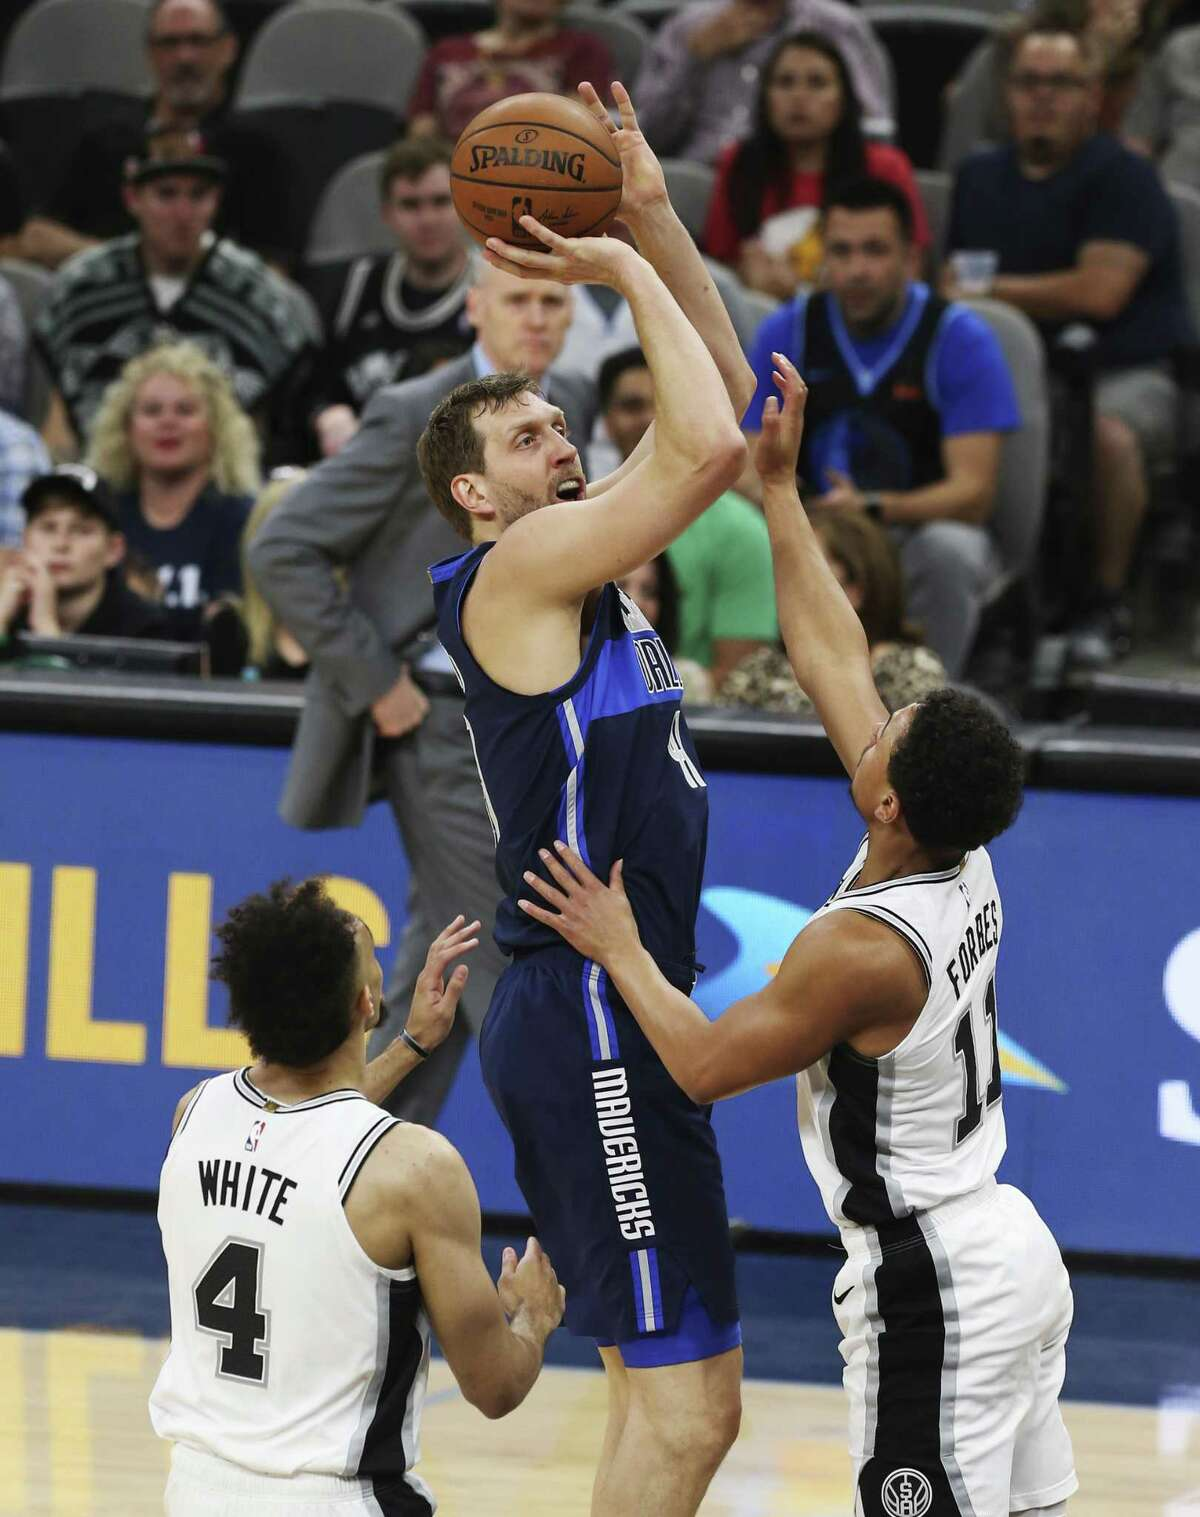 Dallas Mavericks' Dirk Nowitzki (41) shoots and makes his first basket against Spurs' Bryn Forbes (11) and Derrick White (04) in the first quarter at the AT&T Center on Wednesday, Apr. 10, 2019. (Kin Man Hui/San Antonio Express-News)